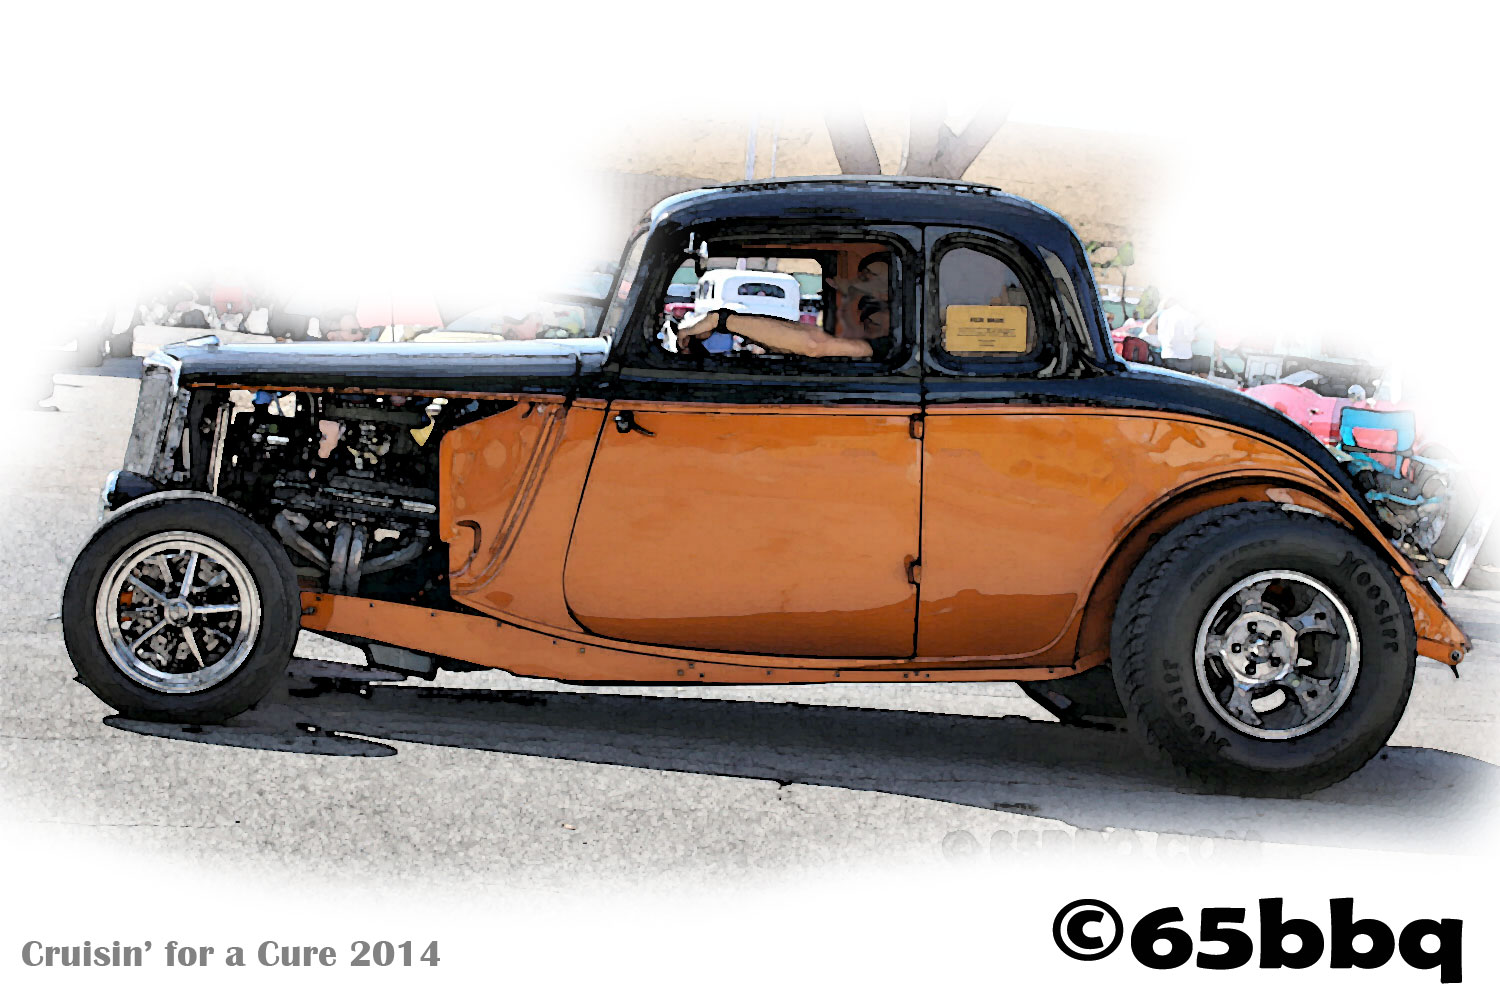 cruisin-for-a-cure-2014-the-ranchero-and-the-blue-q-revised-edition-gold.jpg